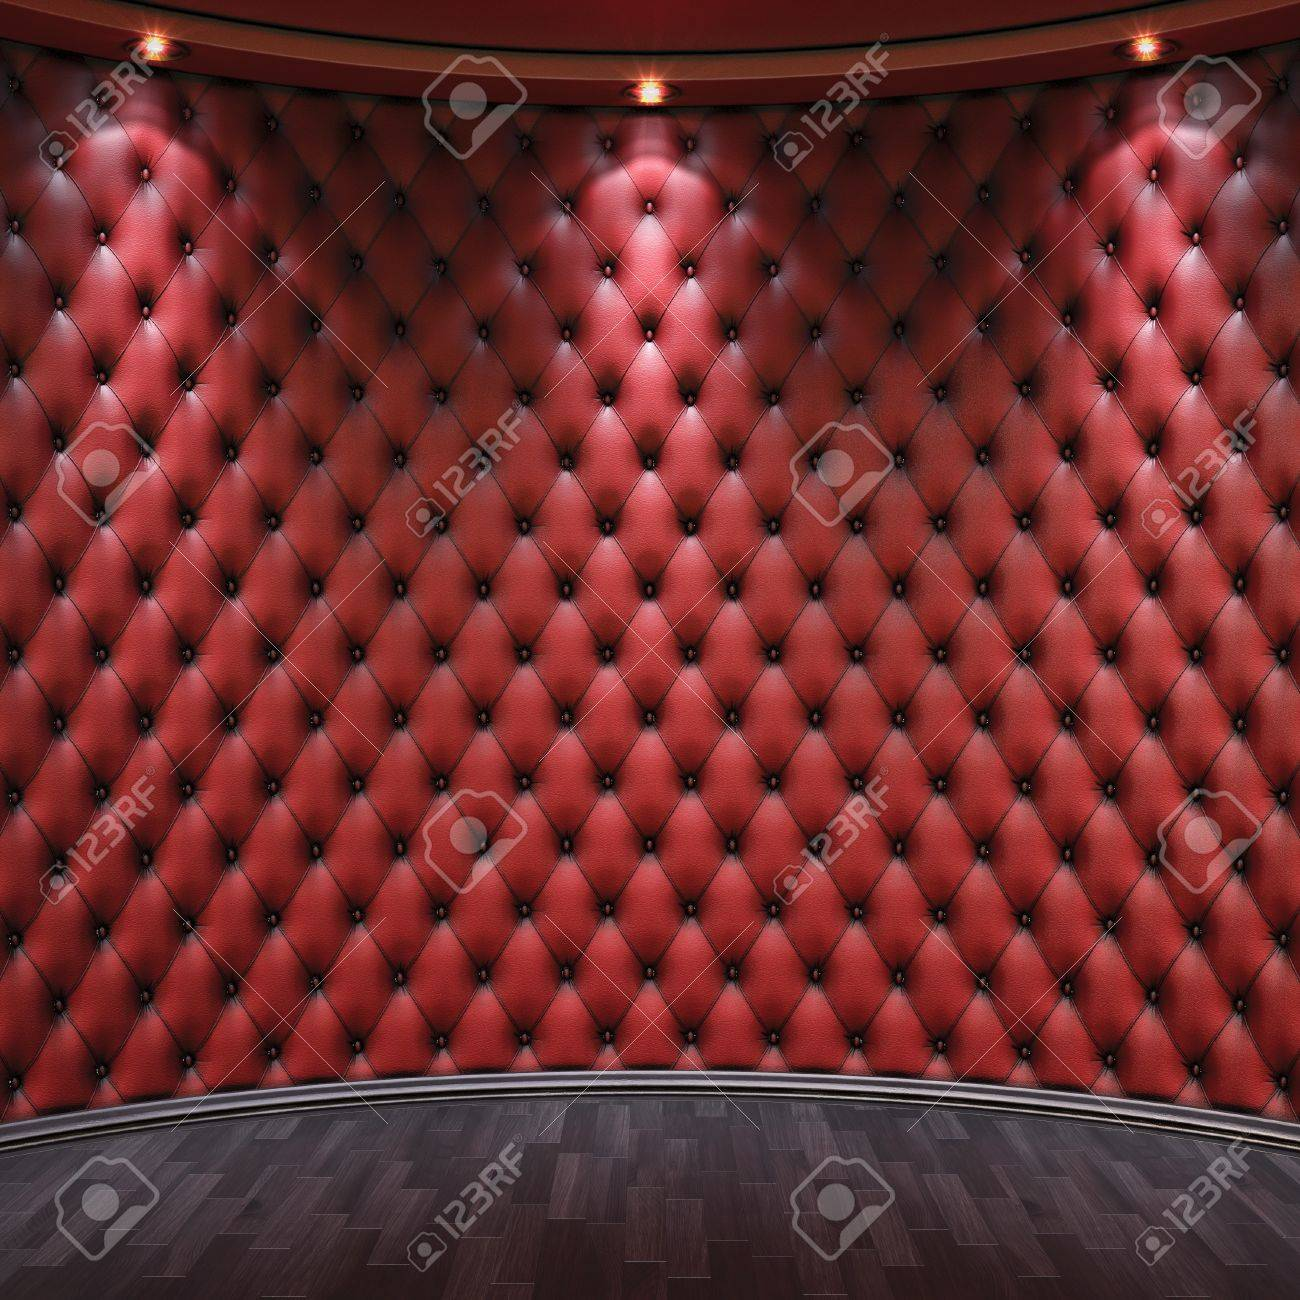 luxurious interior with leather walls and wooden parquet. Stock Photo - 12309804